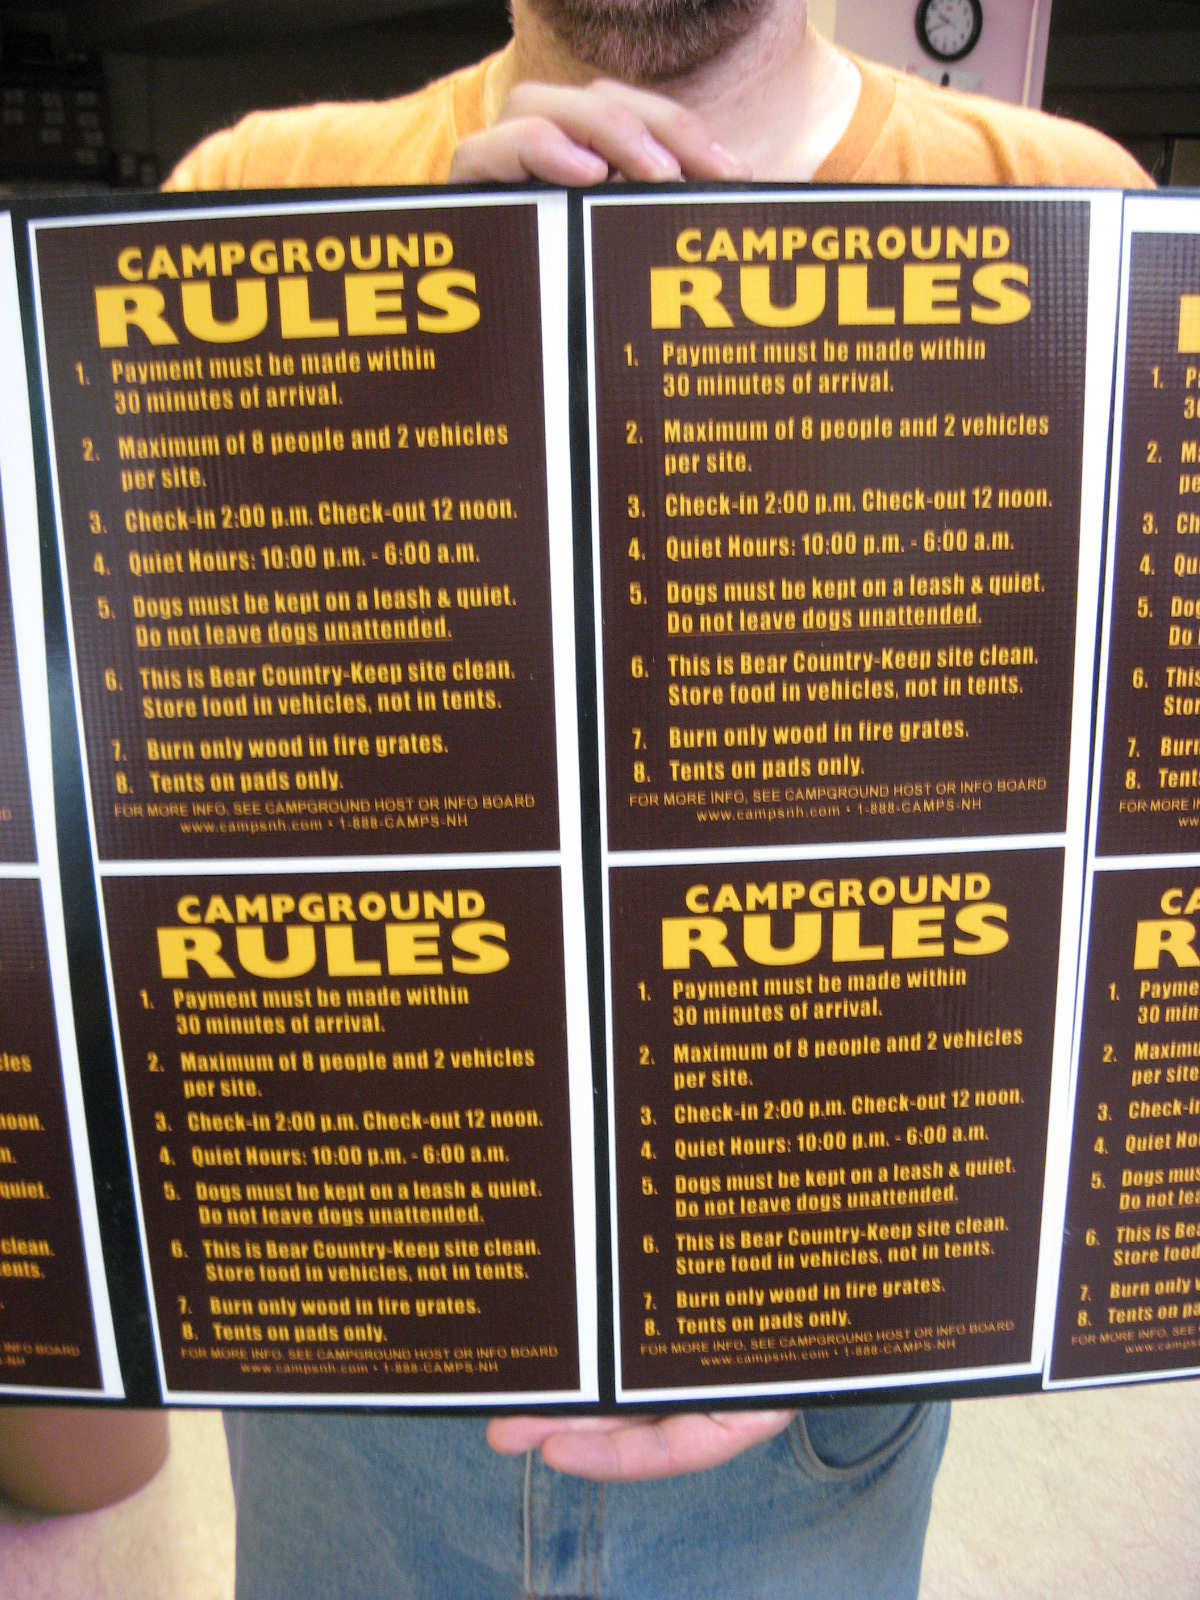 campground rules - eco-friendly backyard fire